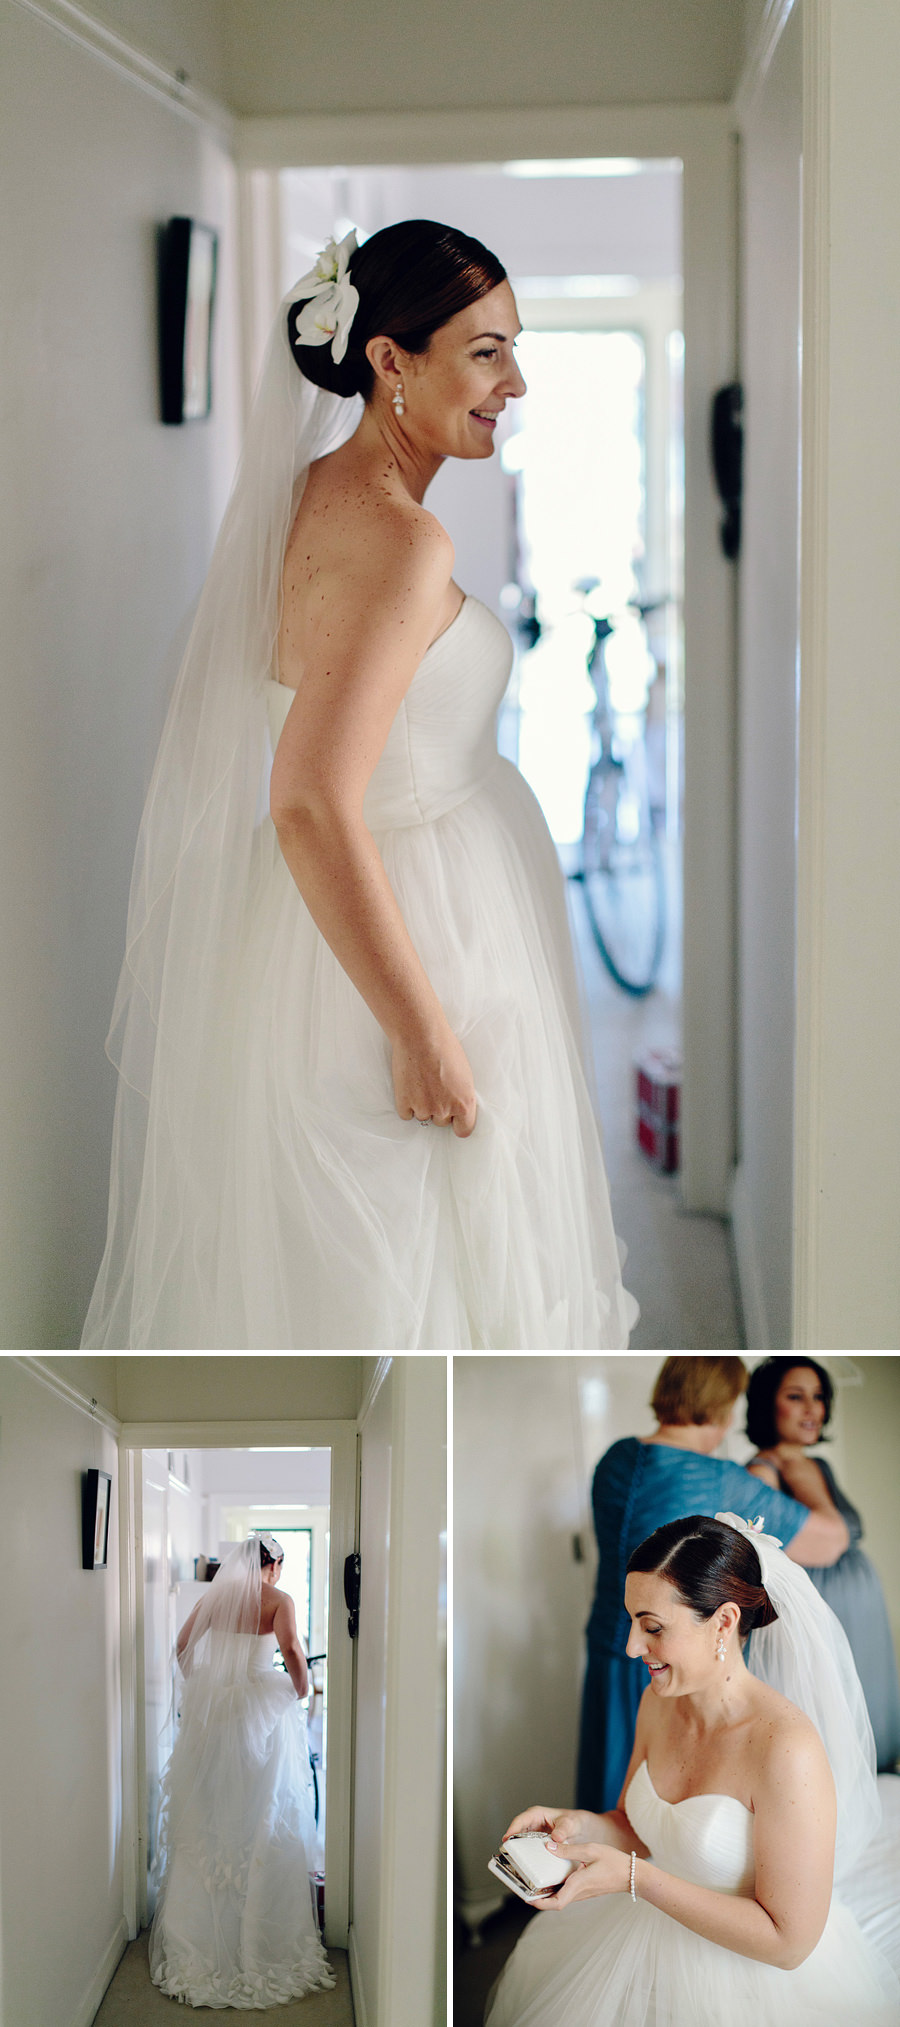 Modern Wedding Photographers: Bride getting ready